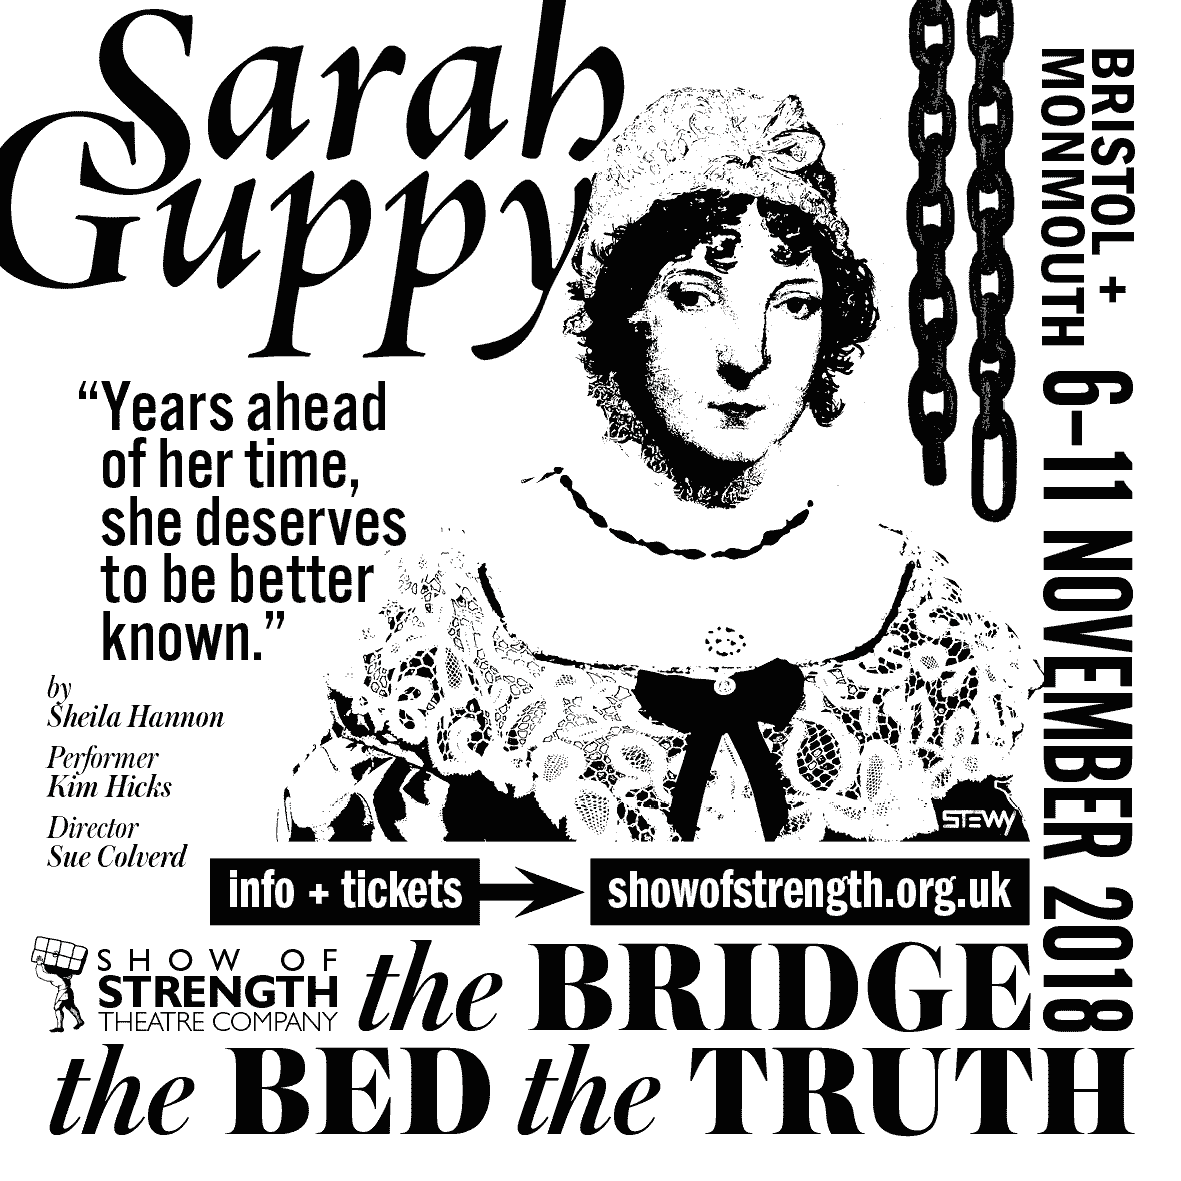 Sarah Guppy: The Bridge, The Bed, The Truth opens to great reviews